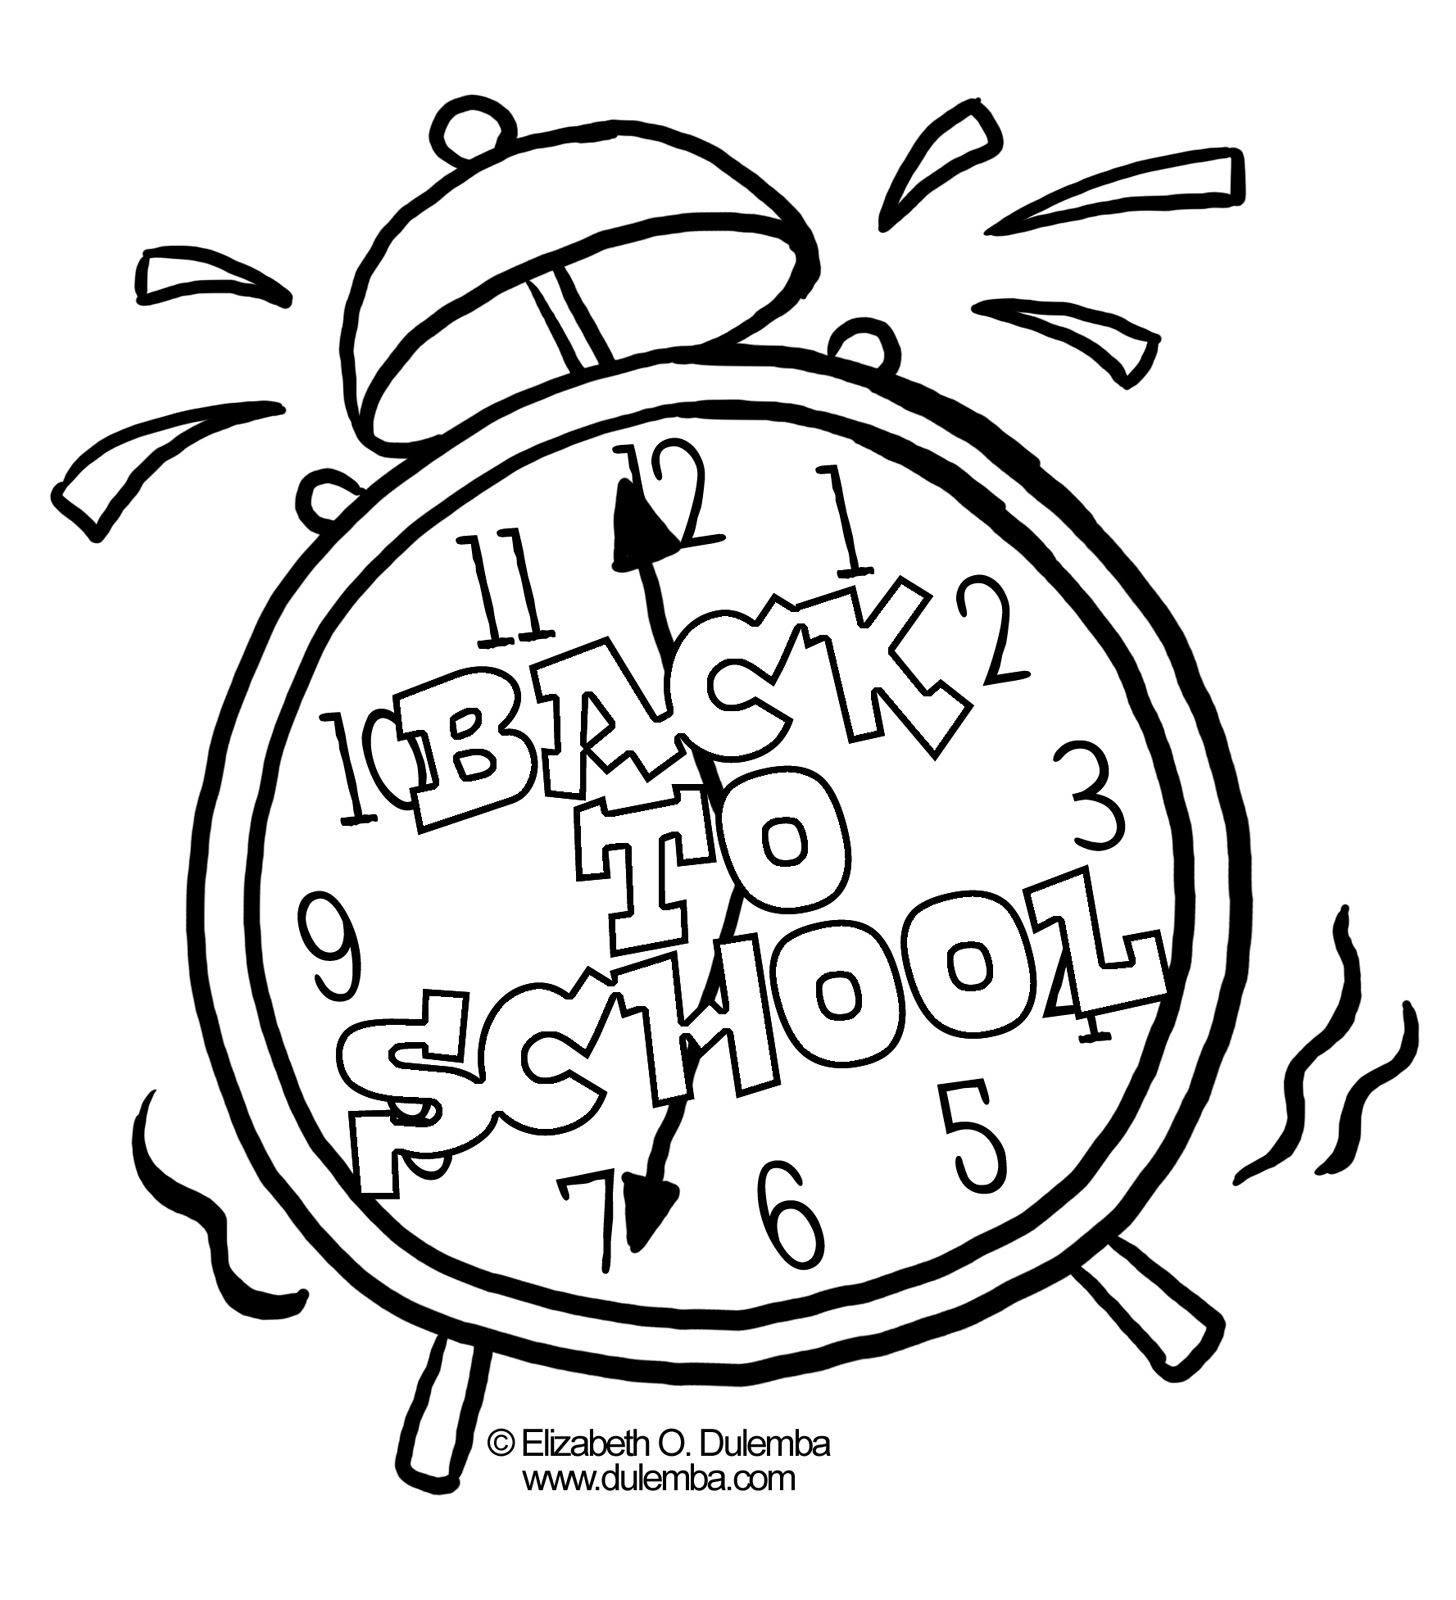 Coloring Pages For Middle School Students ~ Top Coloring Pages